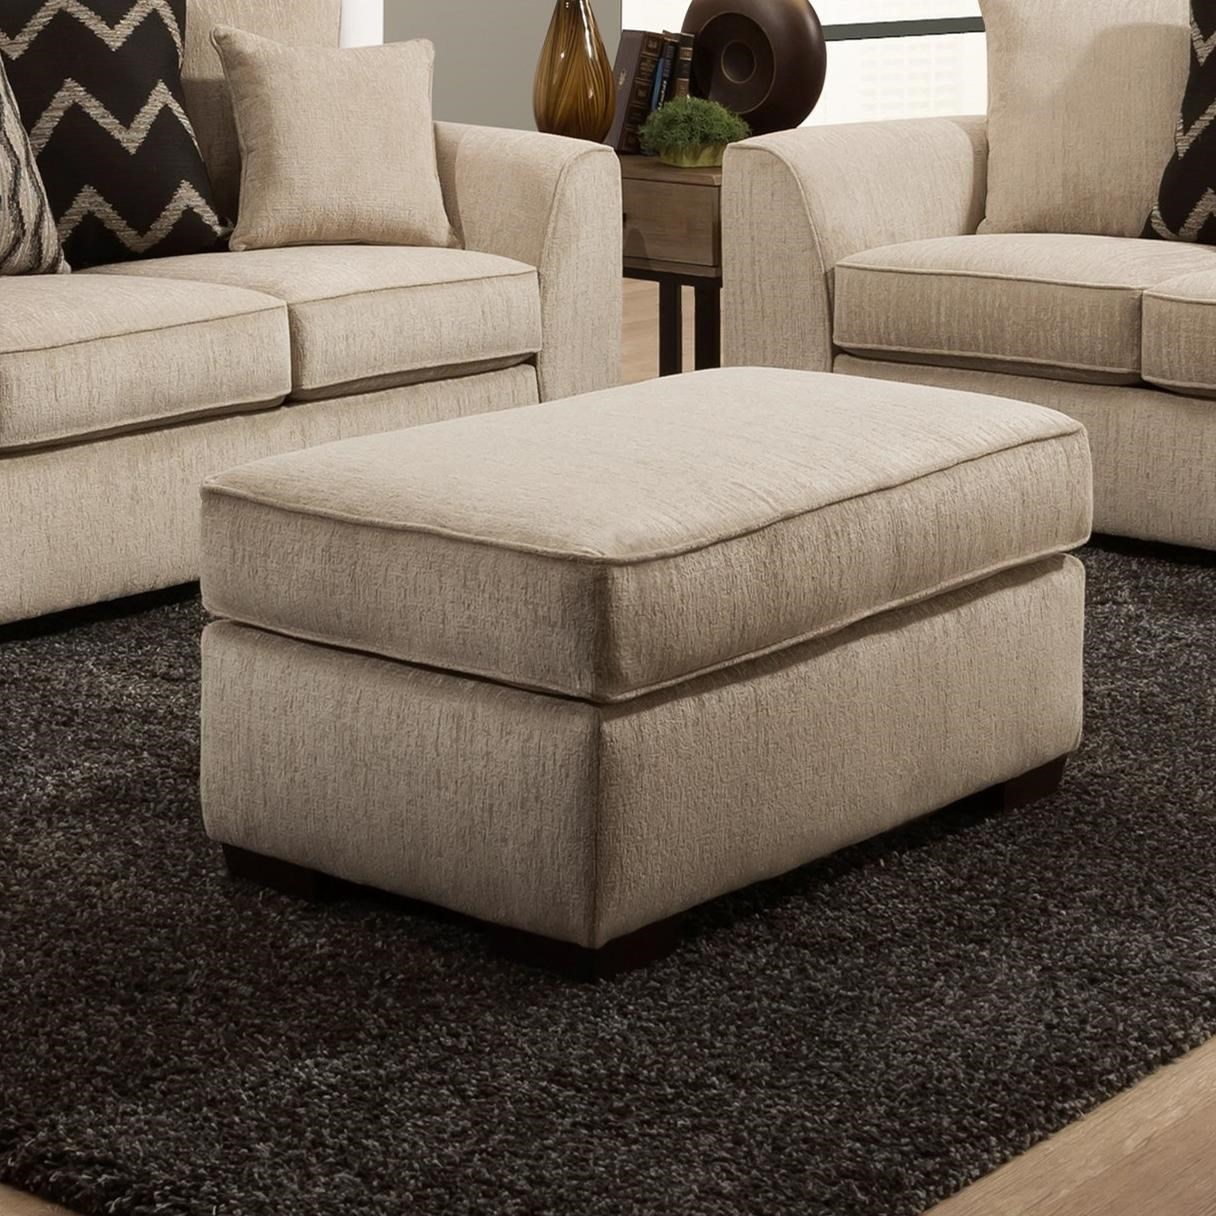 2600 Ottoman   by Peak Living at Prime Brothers Furniture